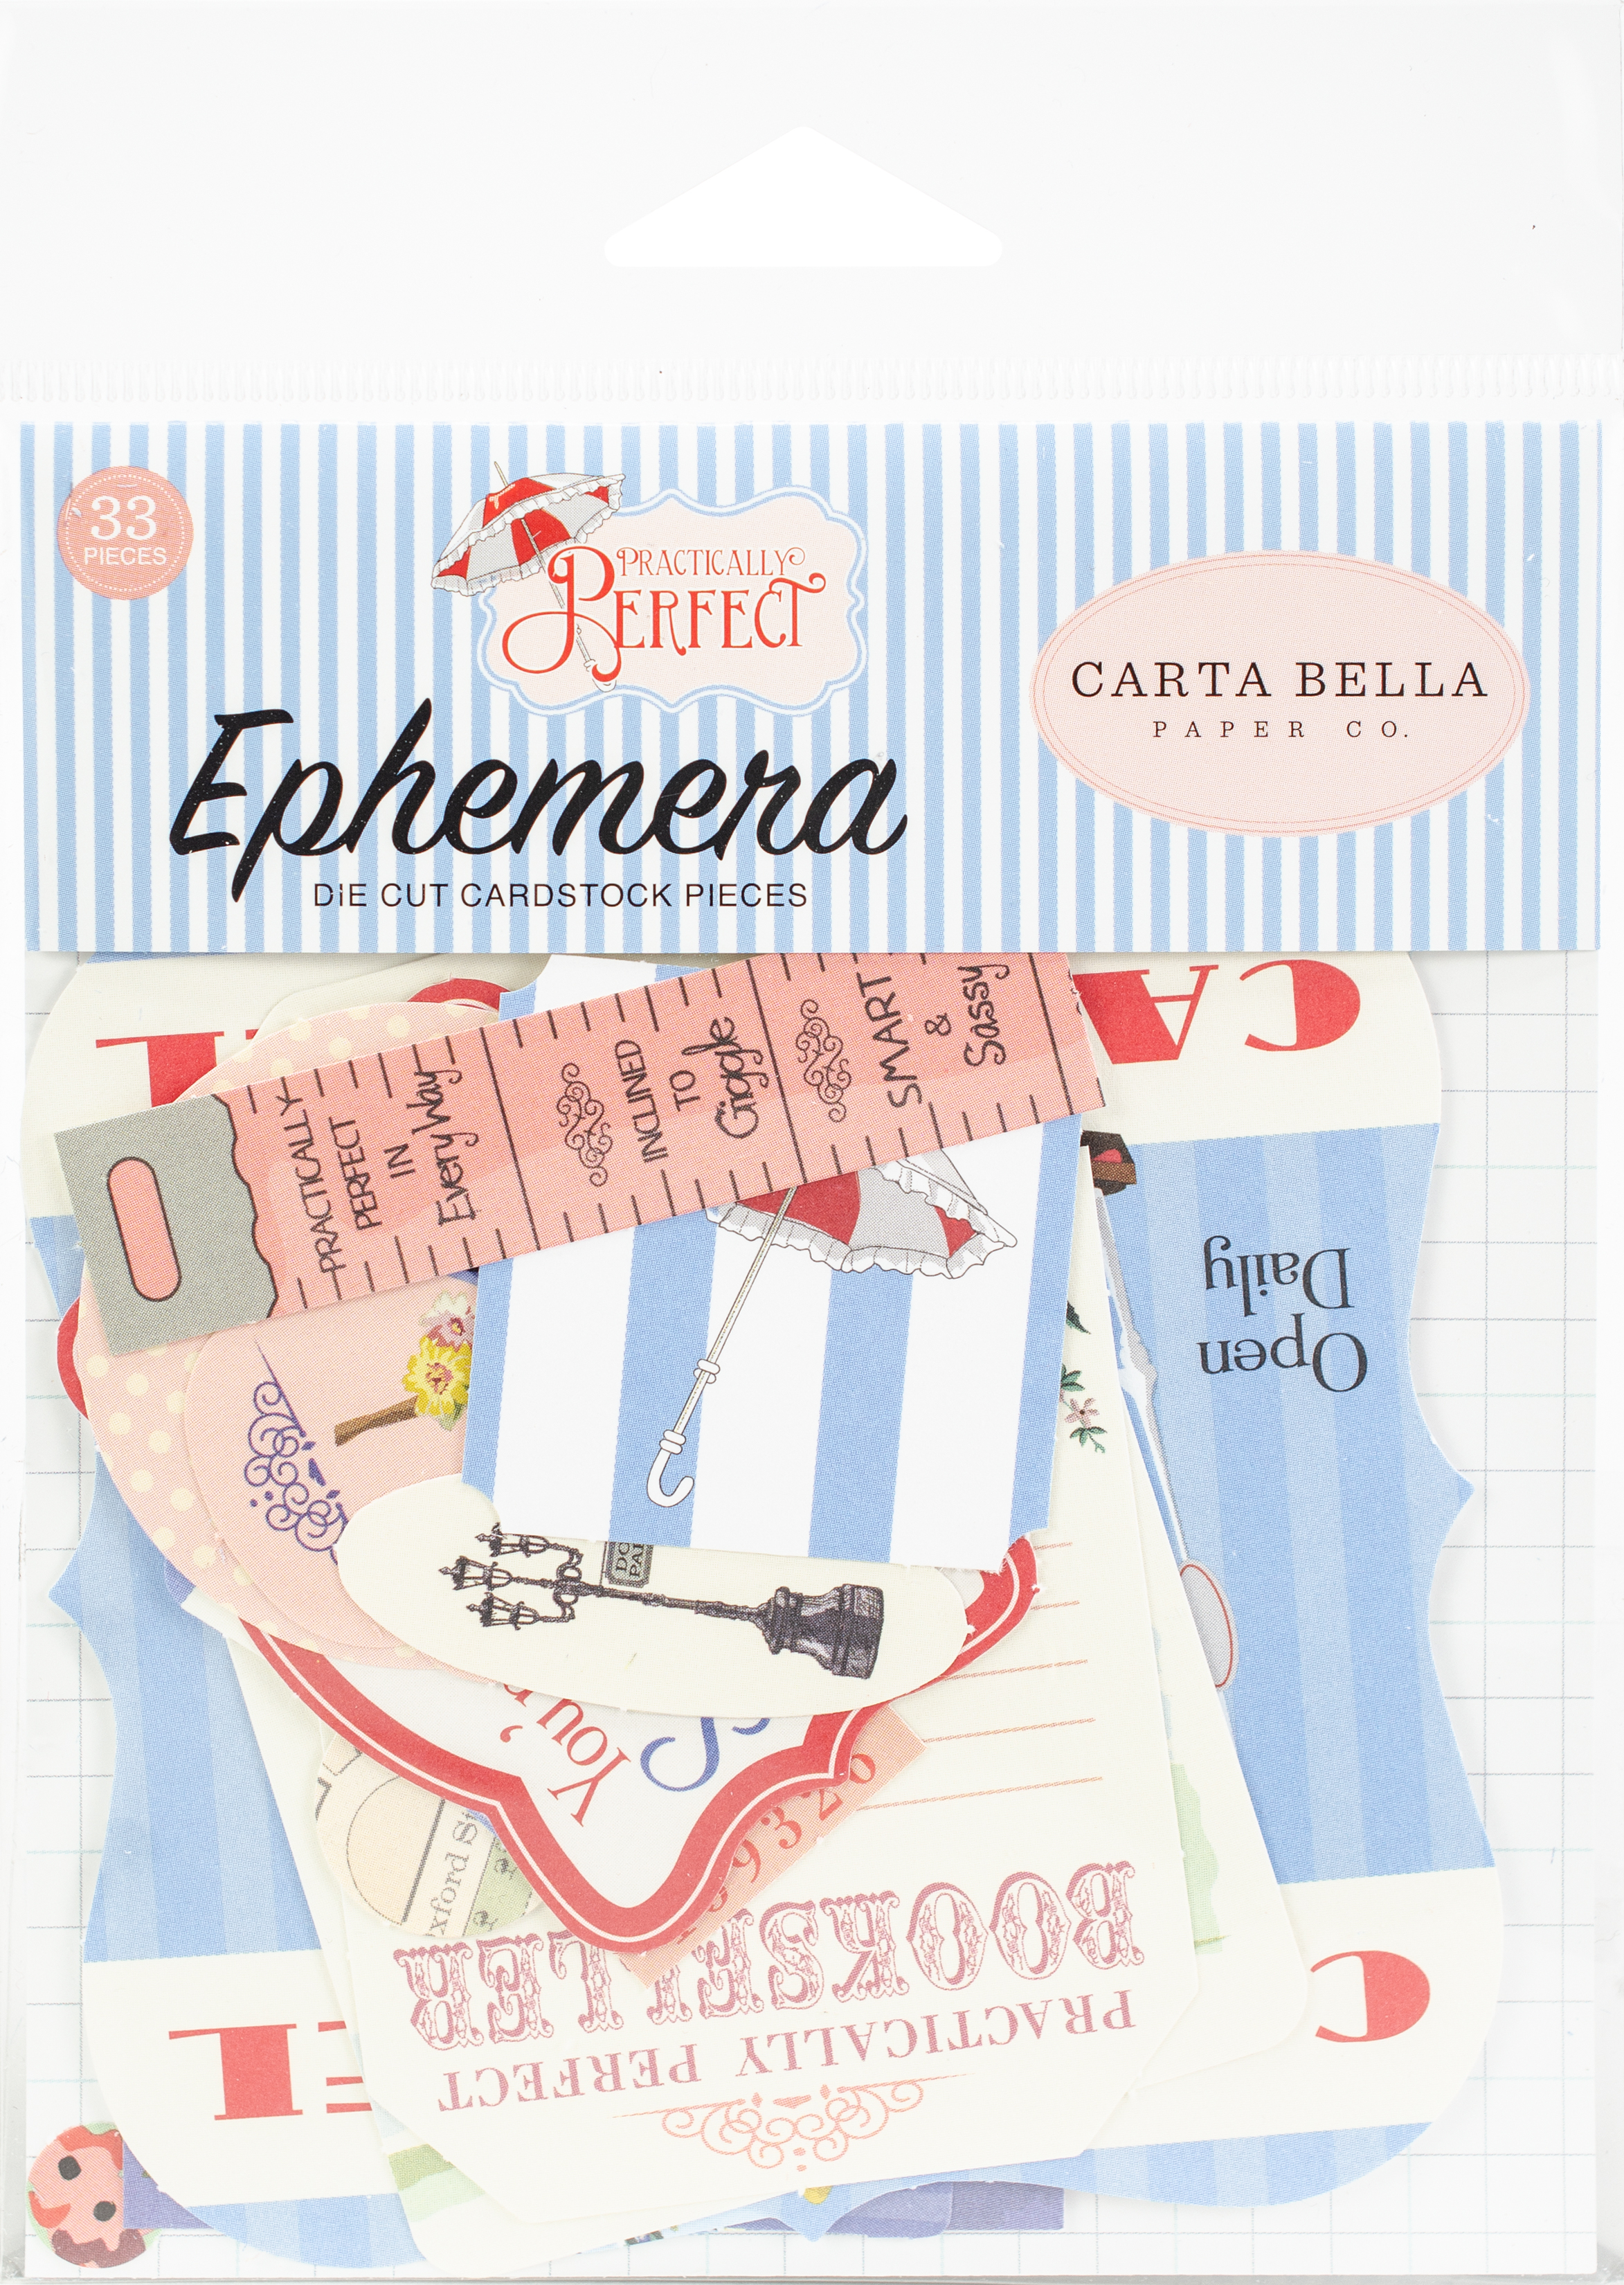 CB Practically Perfect Ephemera